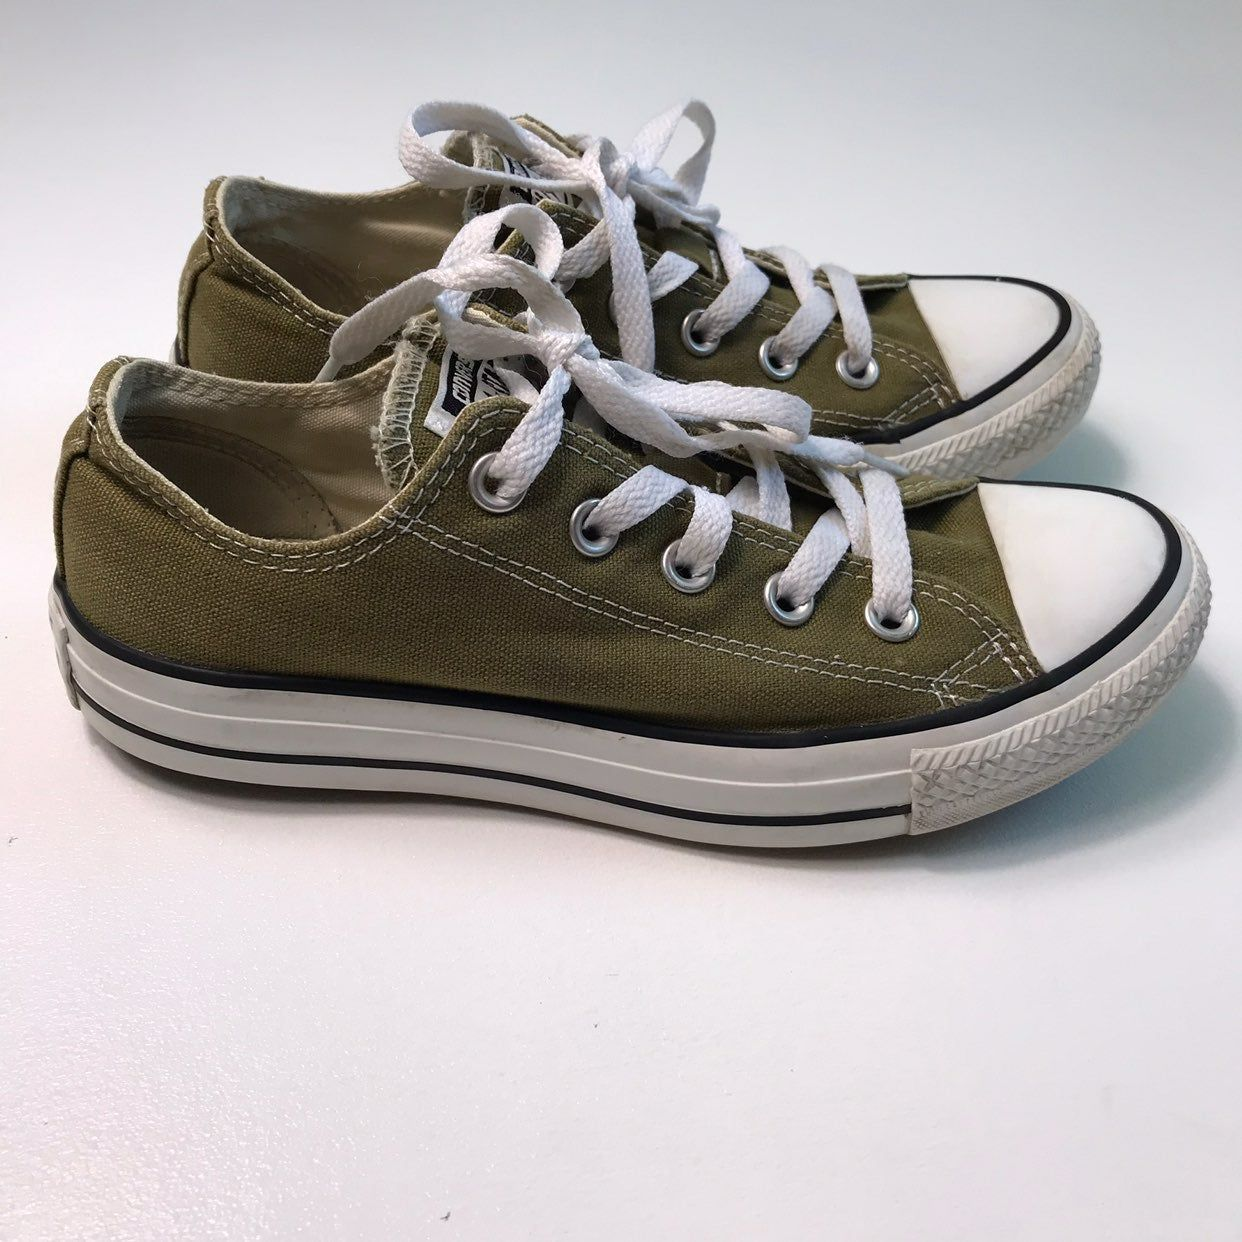 Unisex Sneakers Shoes, olive green